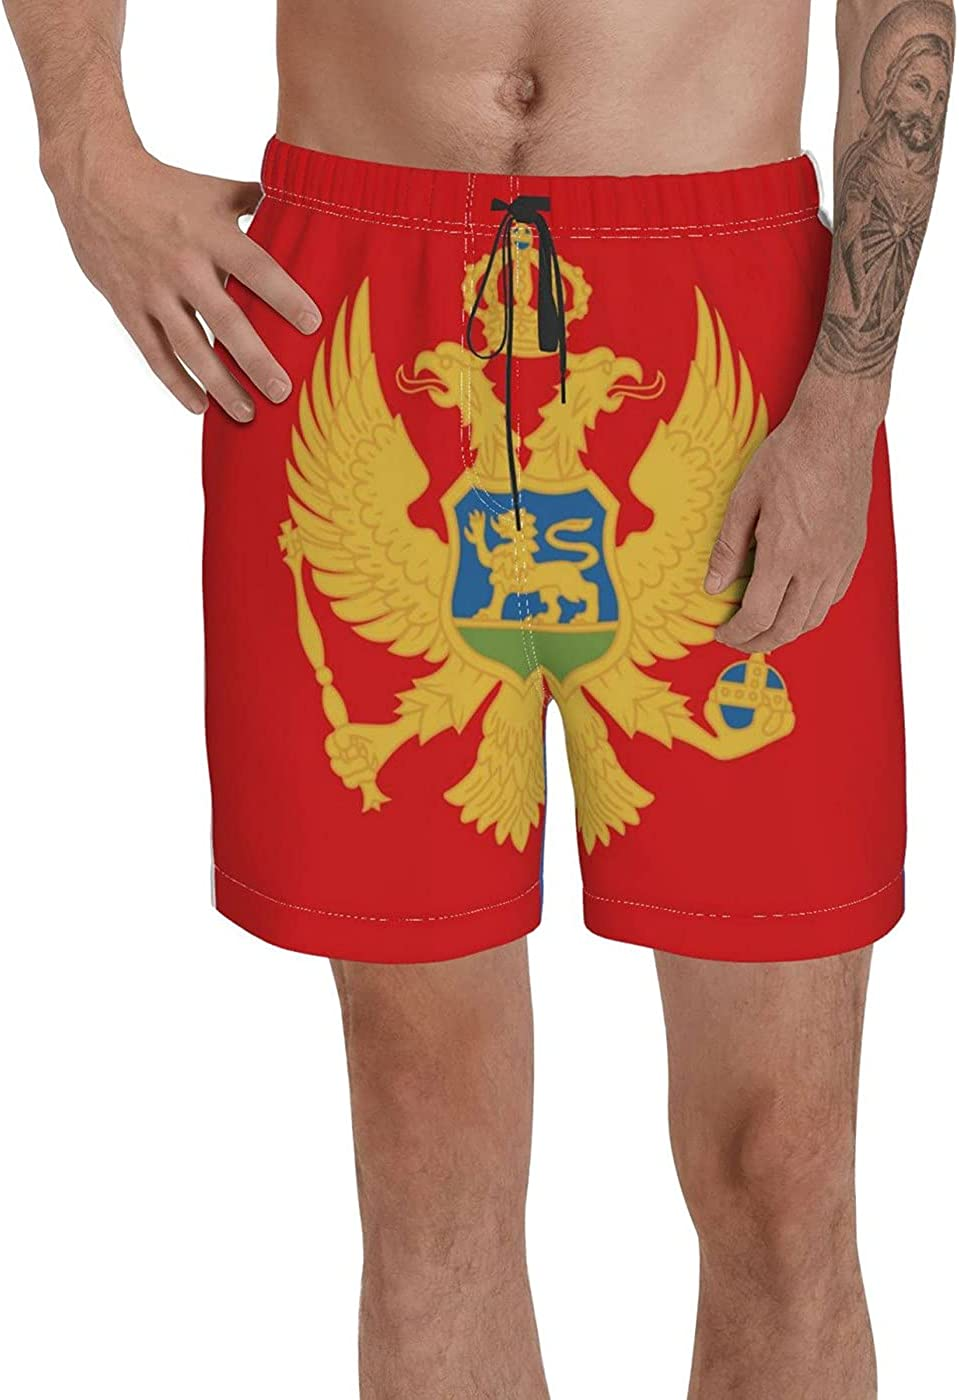 Count Montenegro Flag Men's 3D Printed Funny Summer Quick Dry Swim Short Board Shorts with